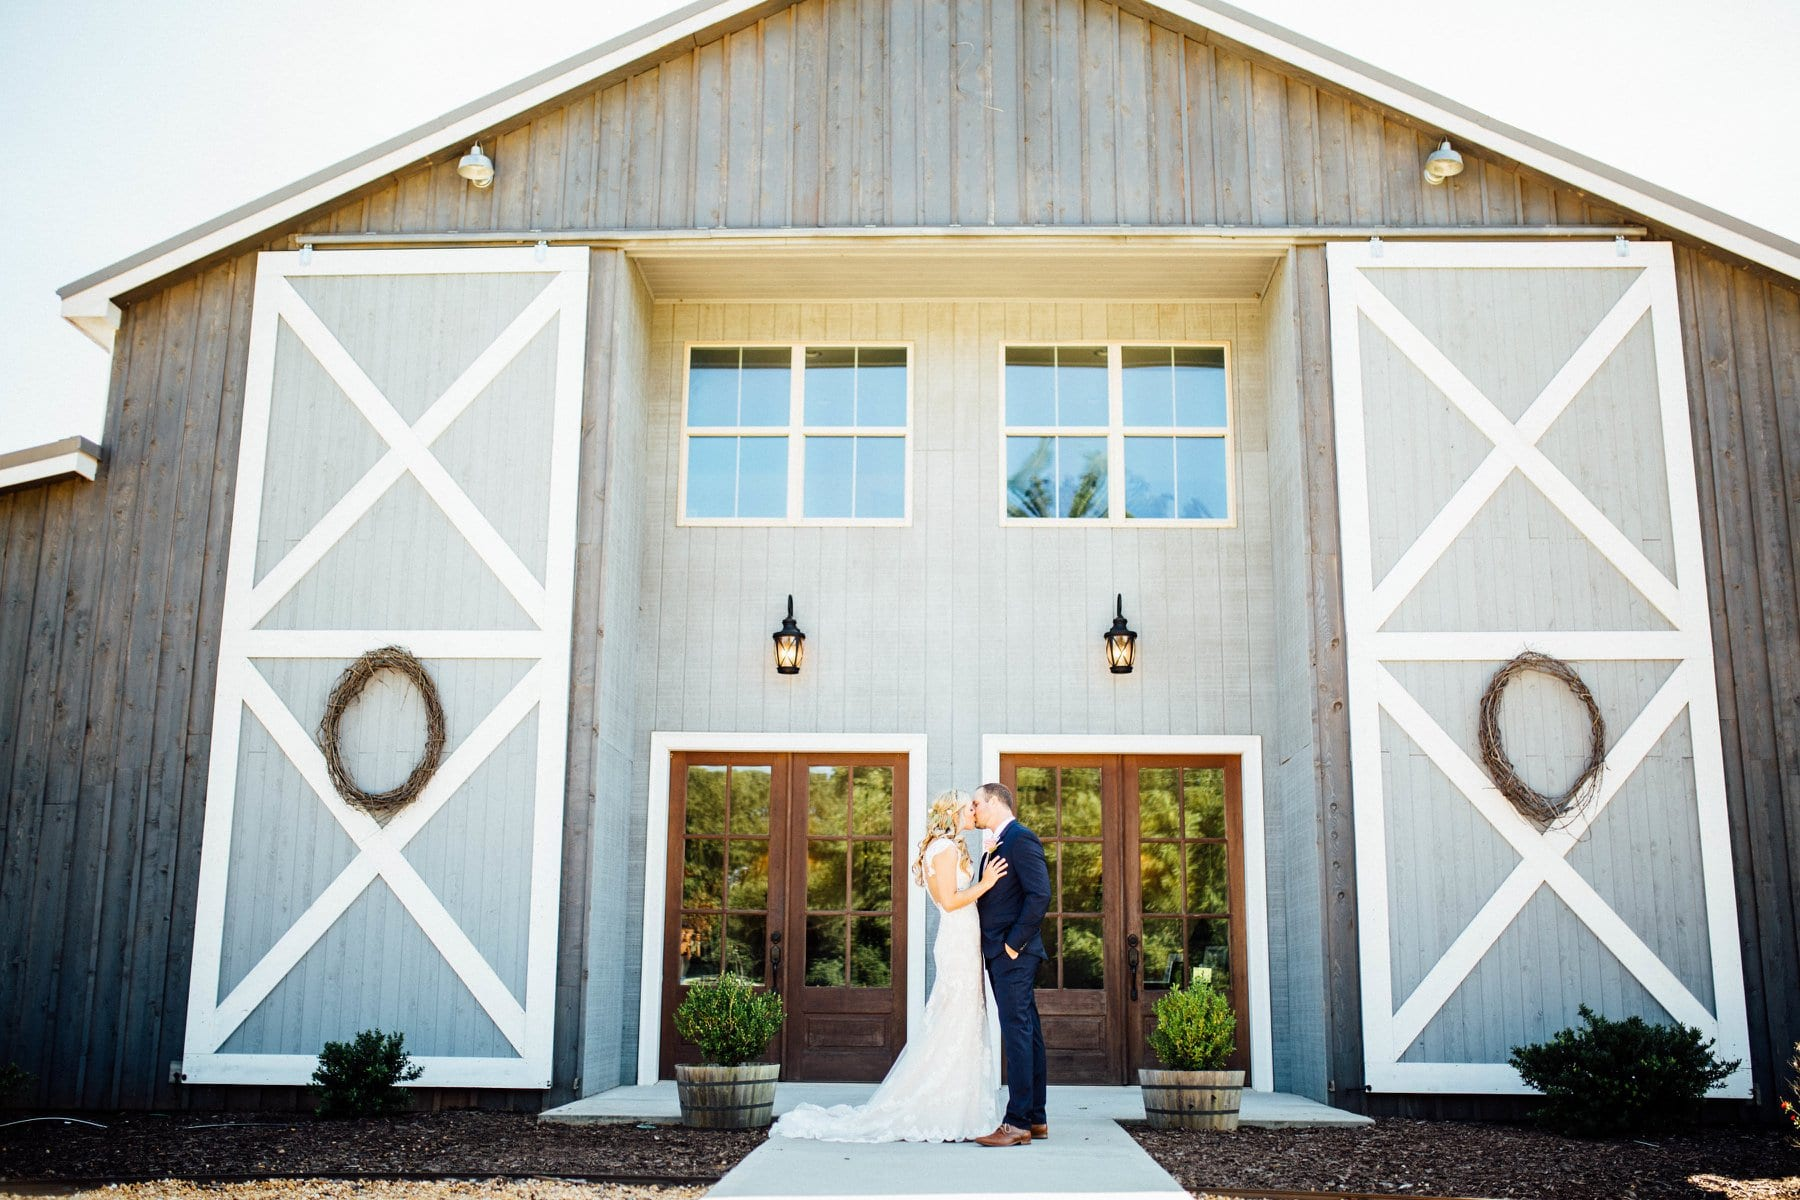 Best North Georgia Wedding Venue, Best North Georgia Wedding Venue & Reception Hall: Grant Hill Farms